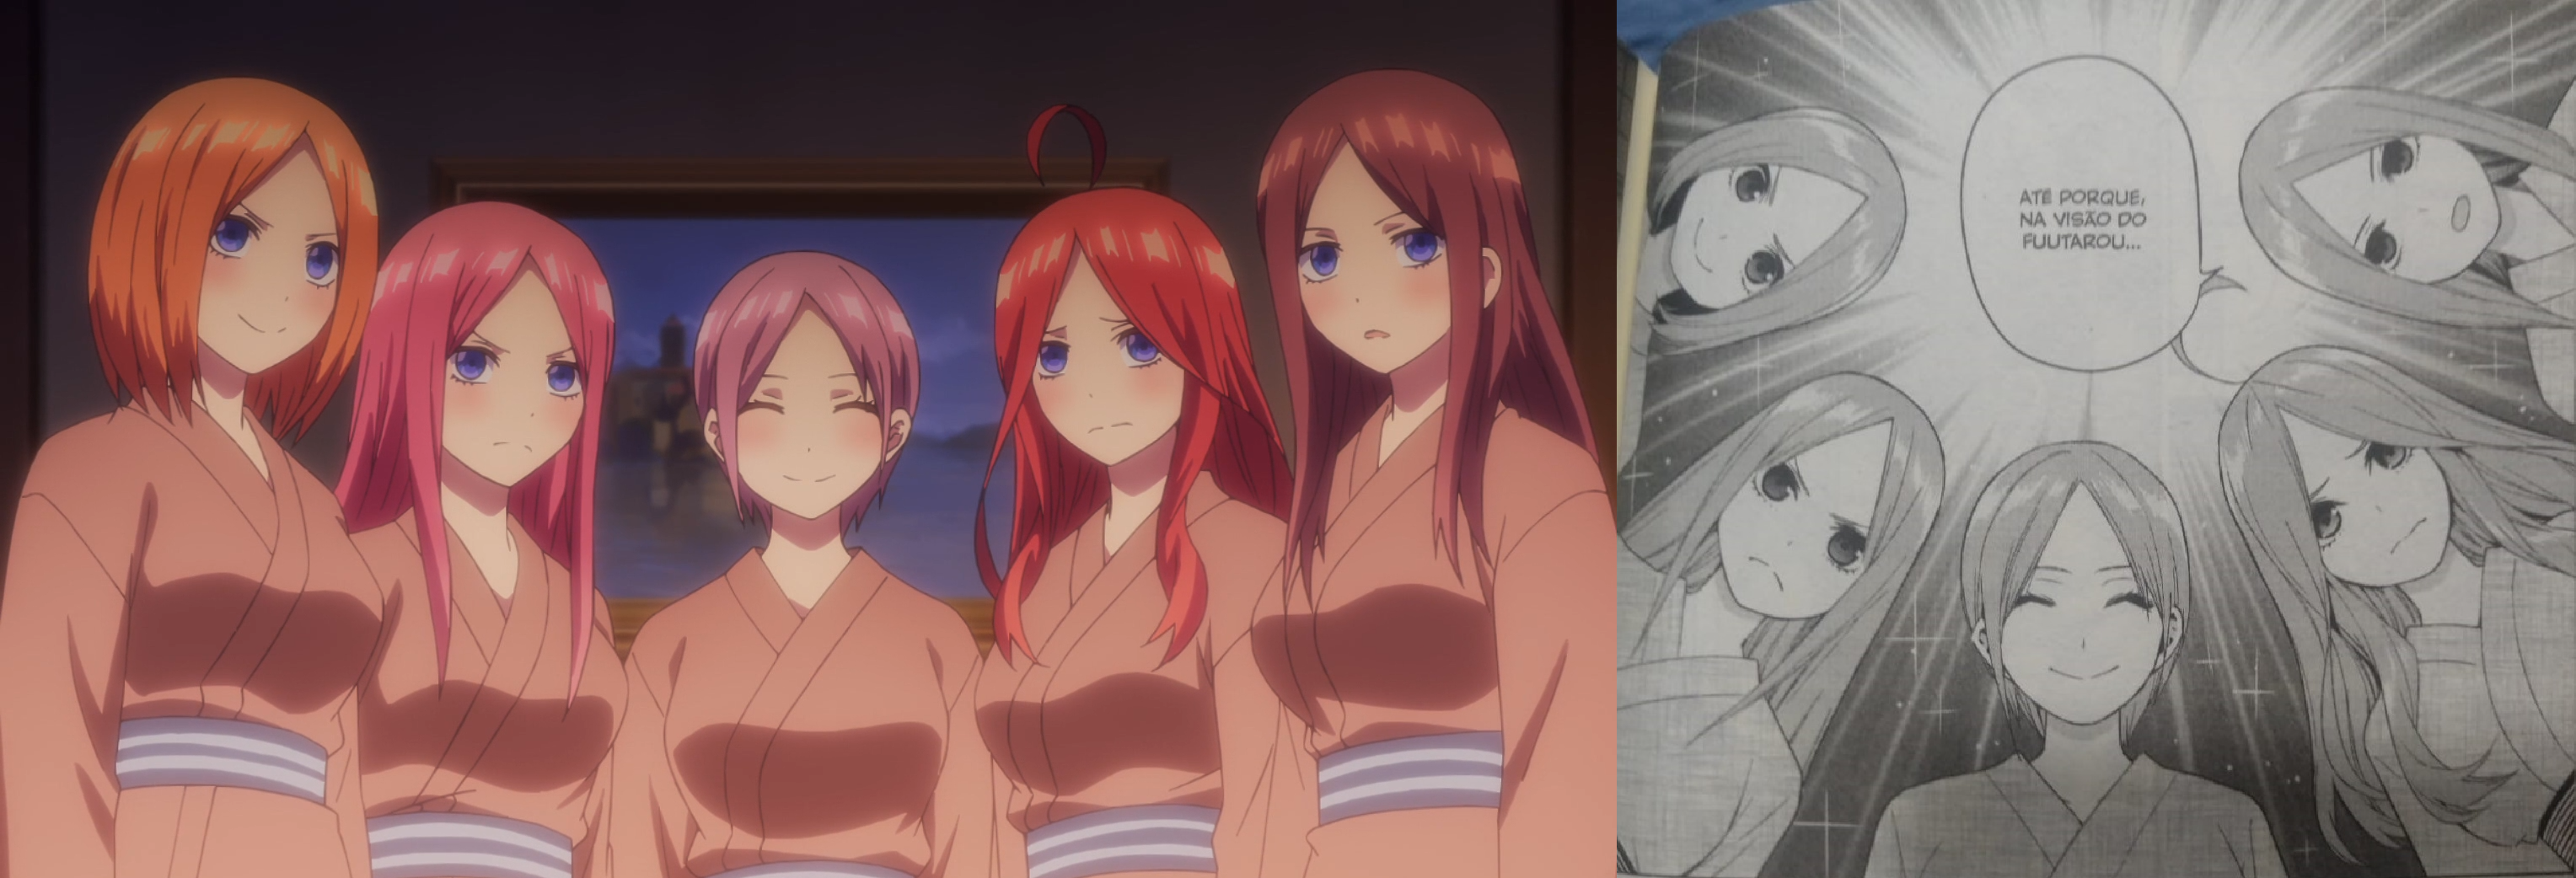 "Na esquerda, captura de tela do episódio 9 de ""The Quintessential Quintuplets""; Na direita, foto de uma página do volume 4 de ""As Quíntuplas"""